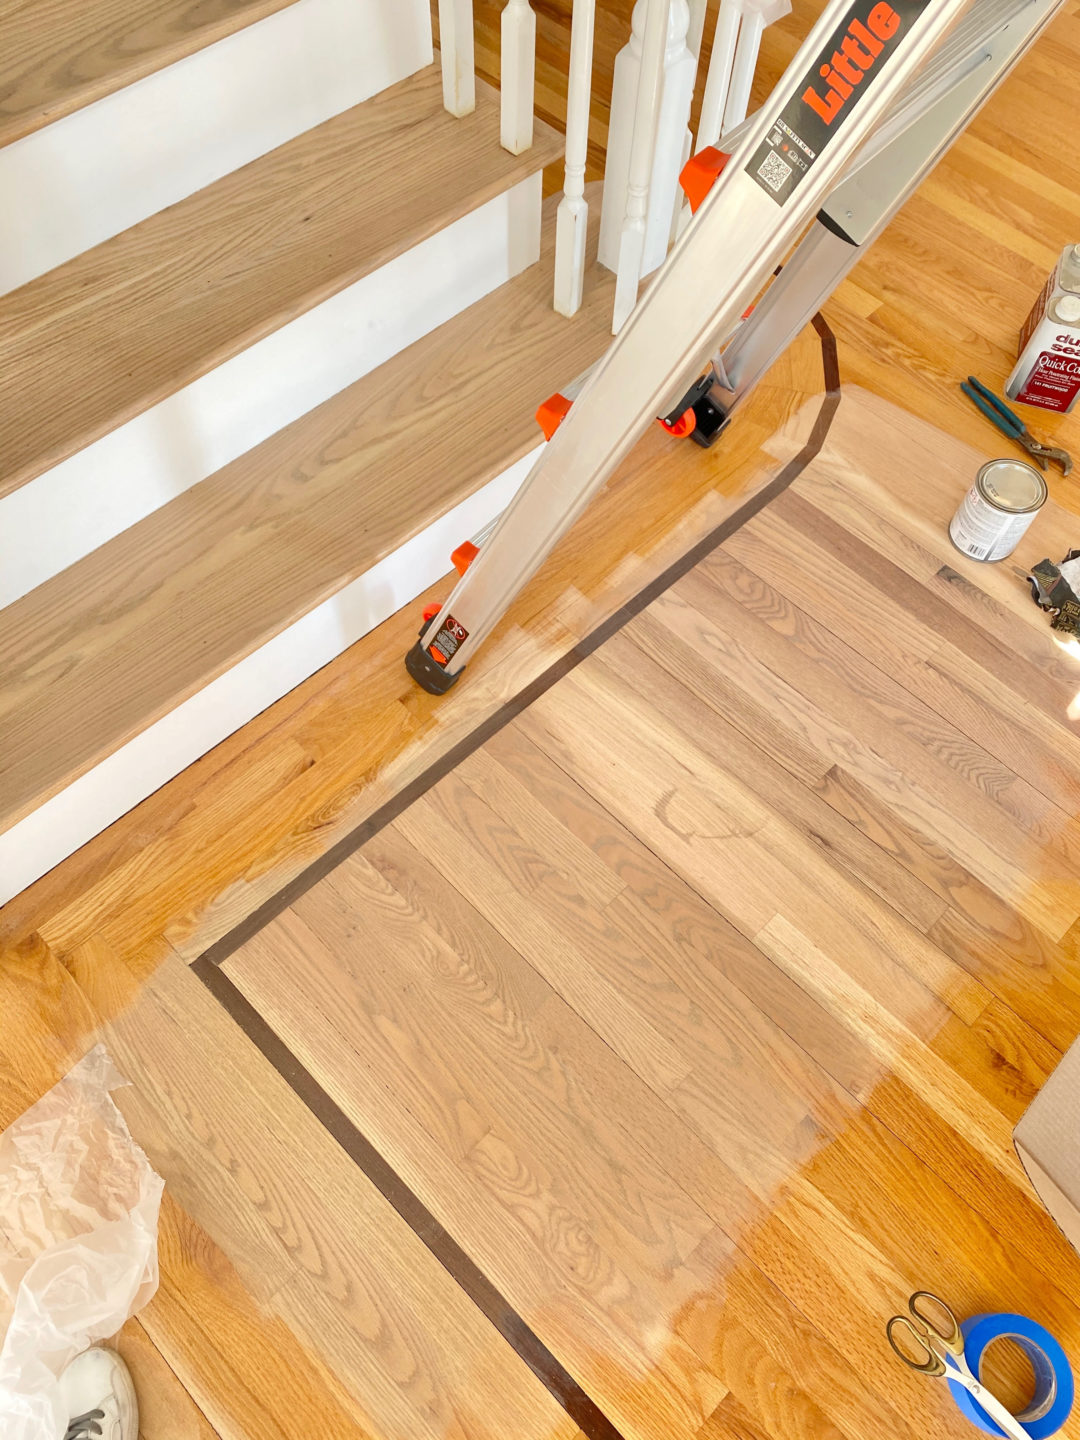 custom stain and duraseal silvered gray stain on red oak hardwood floors